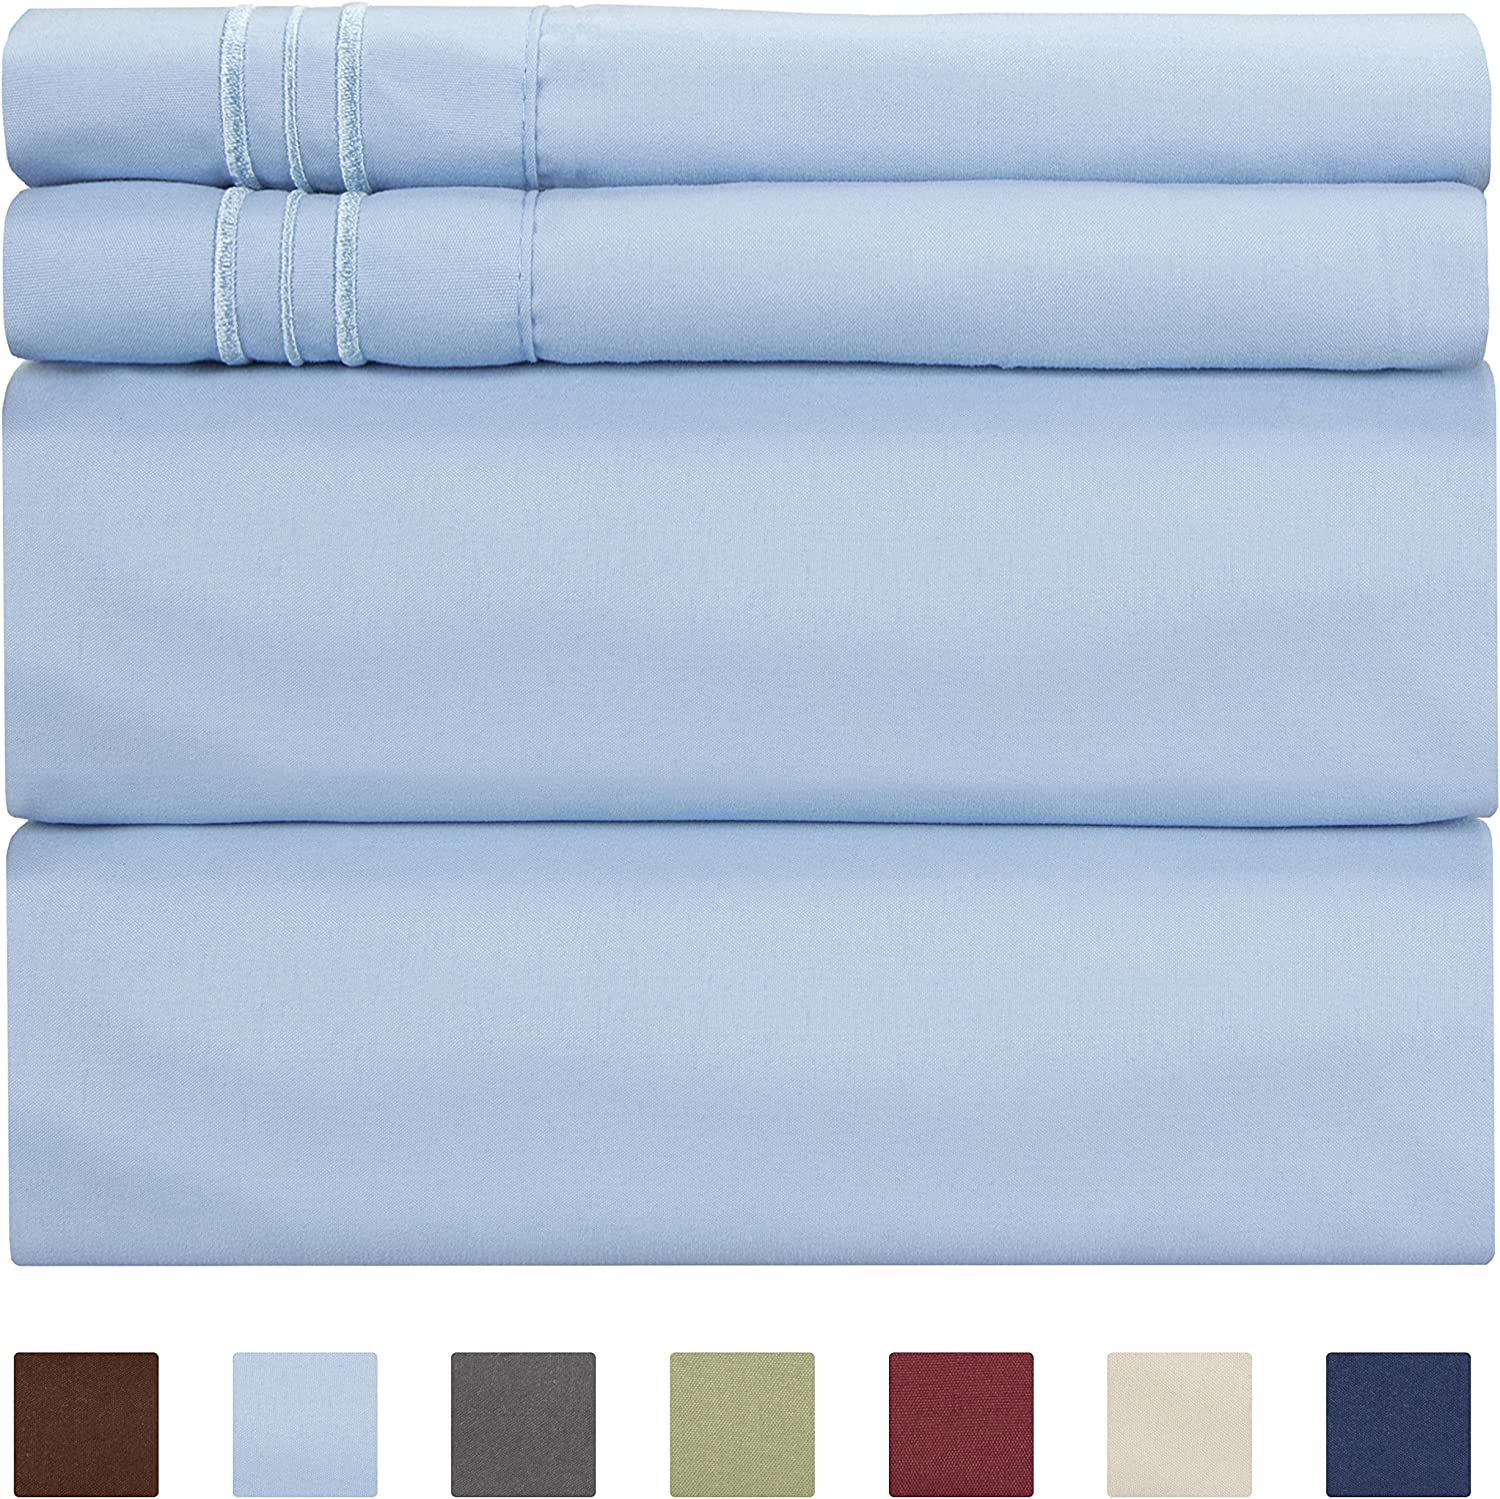 California King Size Sheet Set – 4 Piece - Hotel Luxury Bed - Extra Soft - Deep Pockets - Breathable & Cooling - Wrinkle Free - Comfy – Light Blue Bed Sheets - Cali Kings Sheets Baby Blue PC